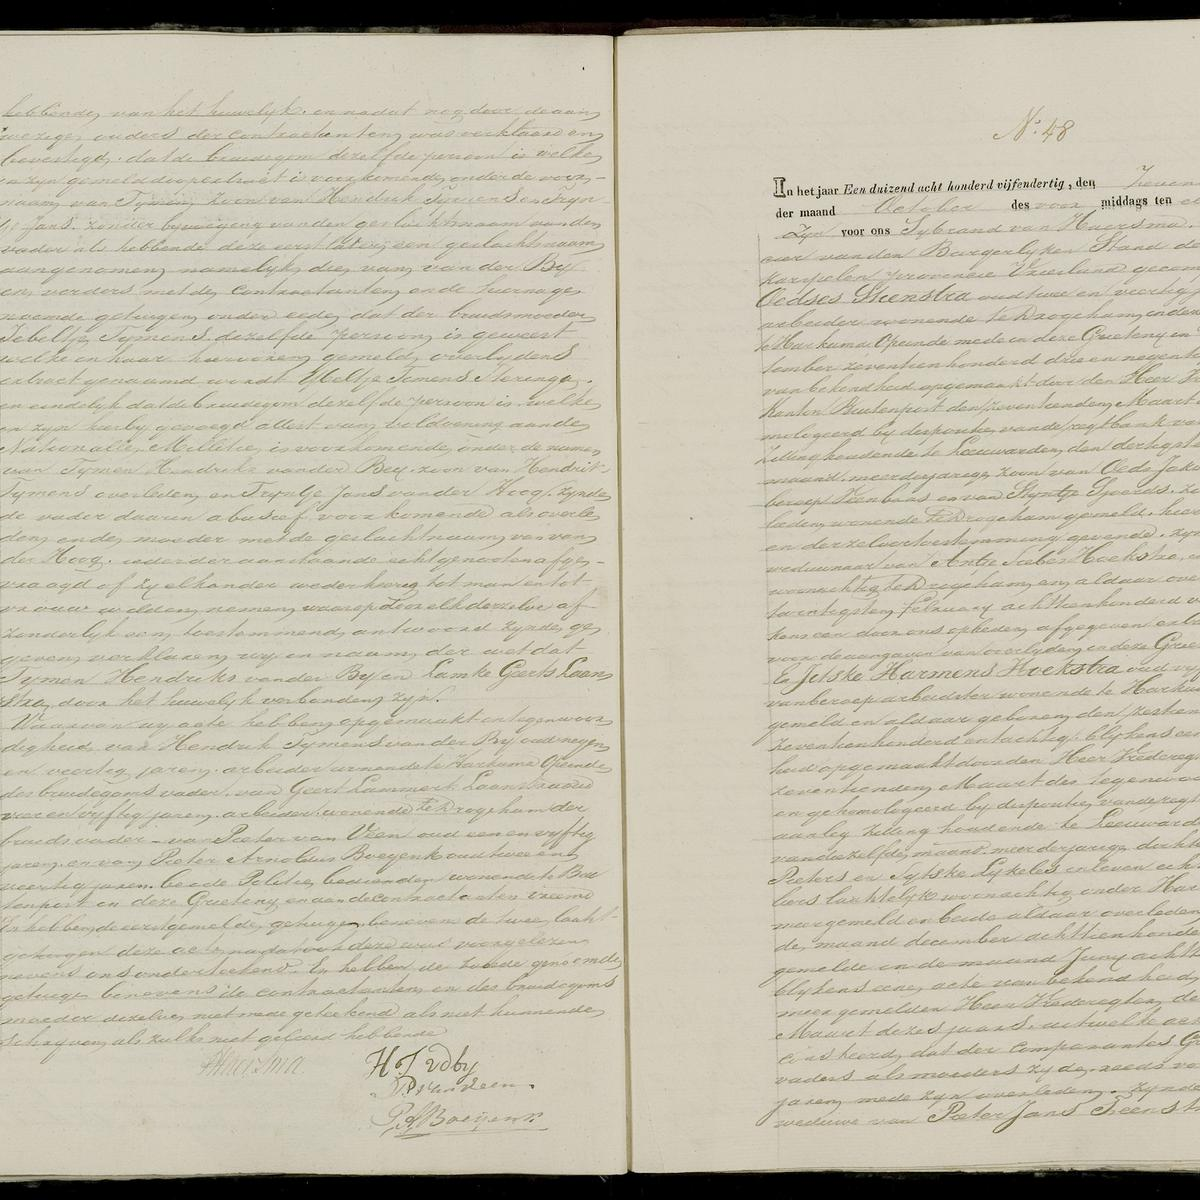 Civil registry of marriages, Achtkarspelen, 1835, records 47-48